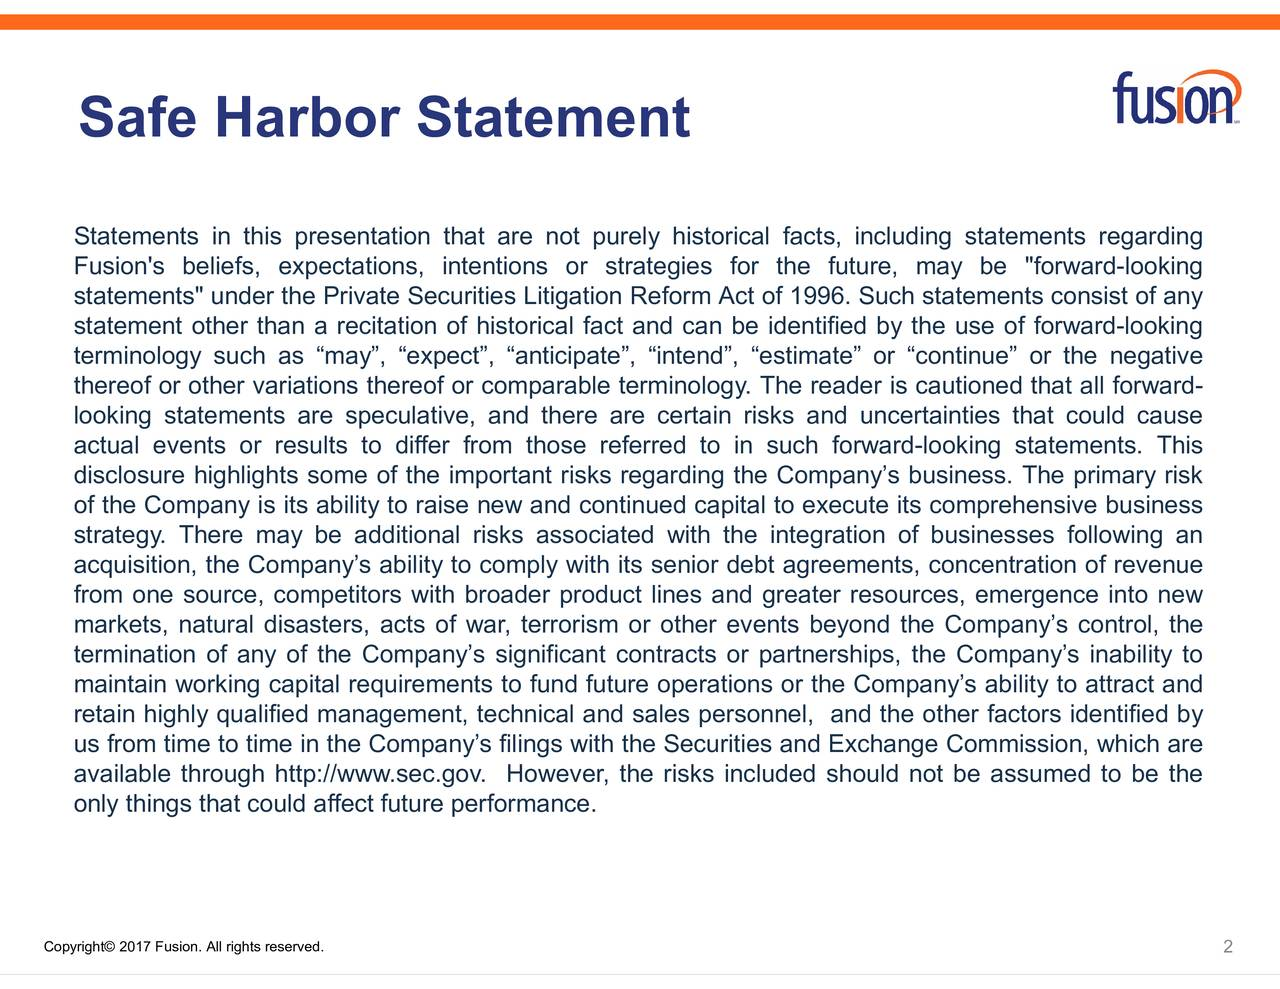 uncrward-looking statements. This tified by the use of forterbeyond the Companys control, the facts, including statemeo execute its comprehensive businessys inability to of 1996. Such statements bt agreements, concentration of revenuessumed to be the y. The reader is cautioned tions or the Companys ability to attract and Safe HarboStatements in this presentation that are not purely historicalfcetrnneitdintrikssa Copyright 2017 Fusion. All rights reserved.